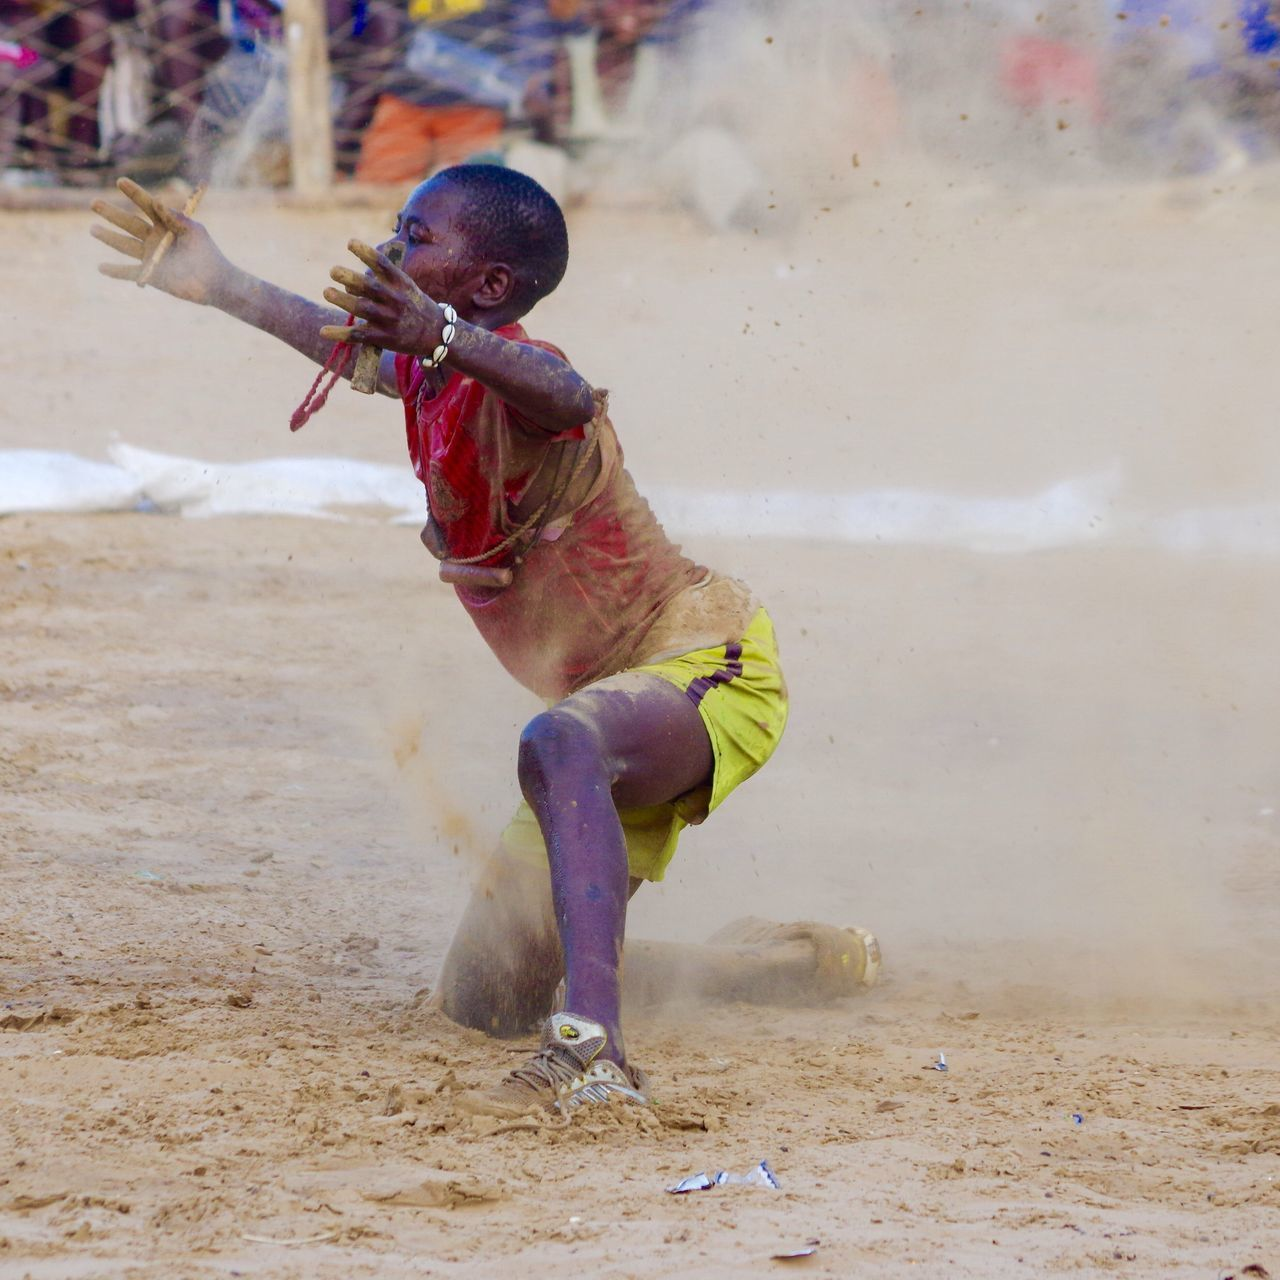 The Photojournalist - 2017 EyeEm Awards The Wrestling competition. One of the latest Animist events in Senegal . Here a young wrestler performs a Ritual Dance to influence his fight.